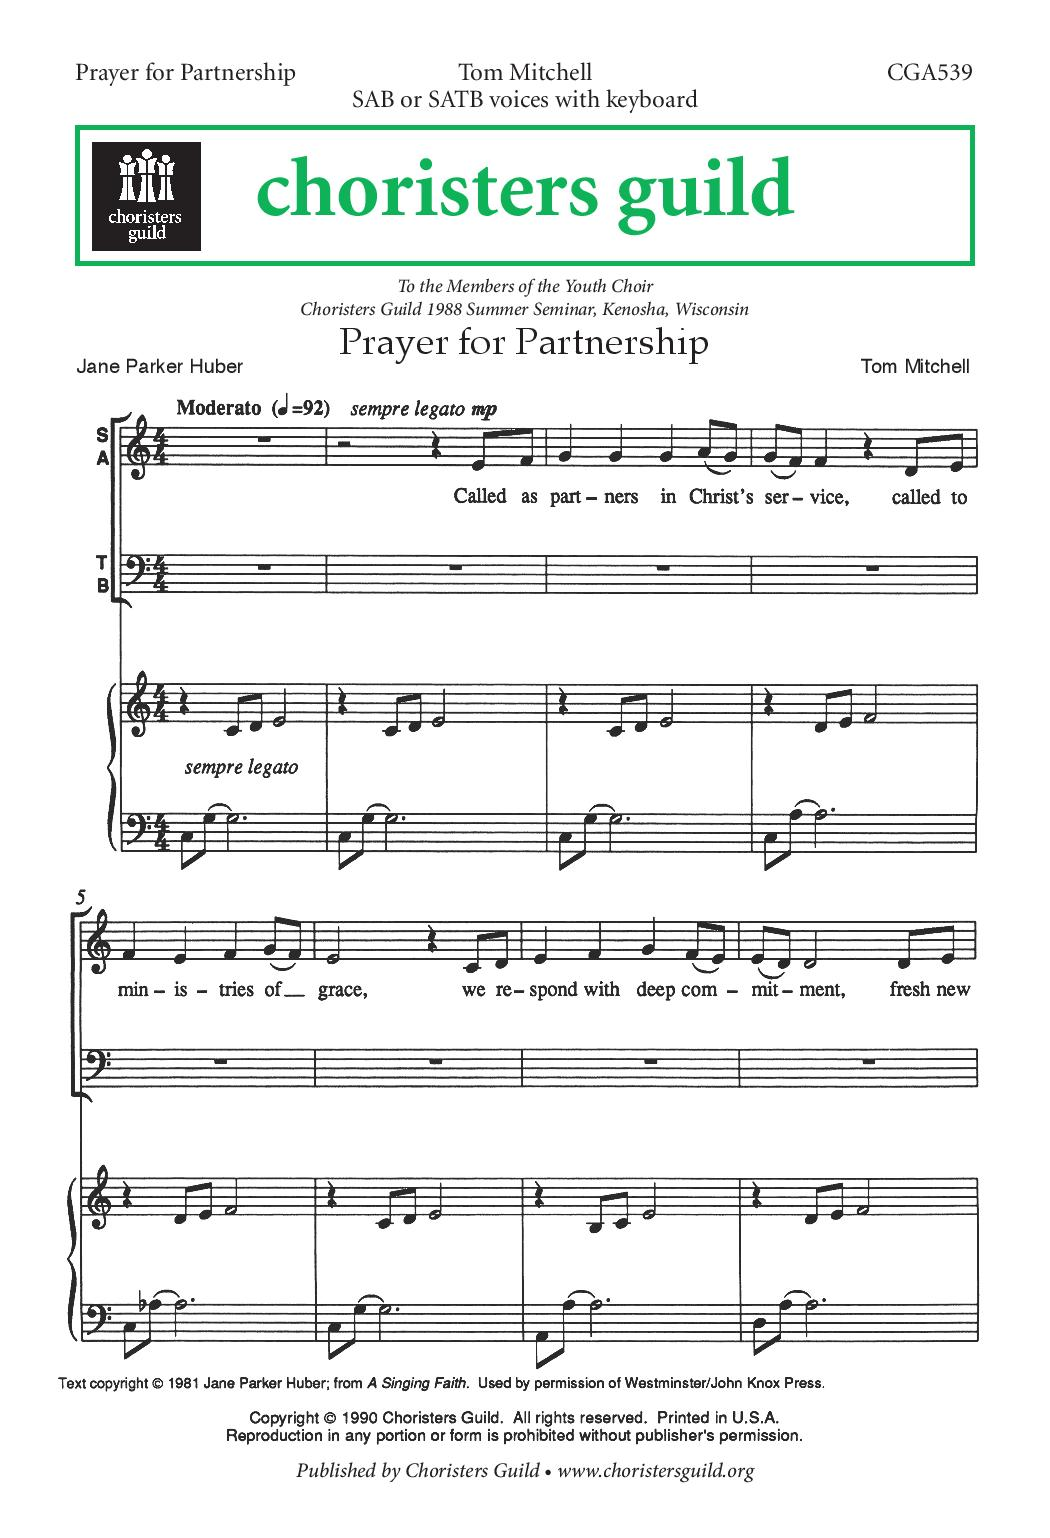 Prayer for Partnership